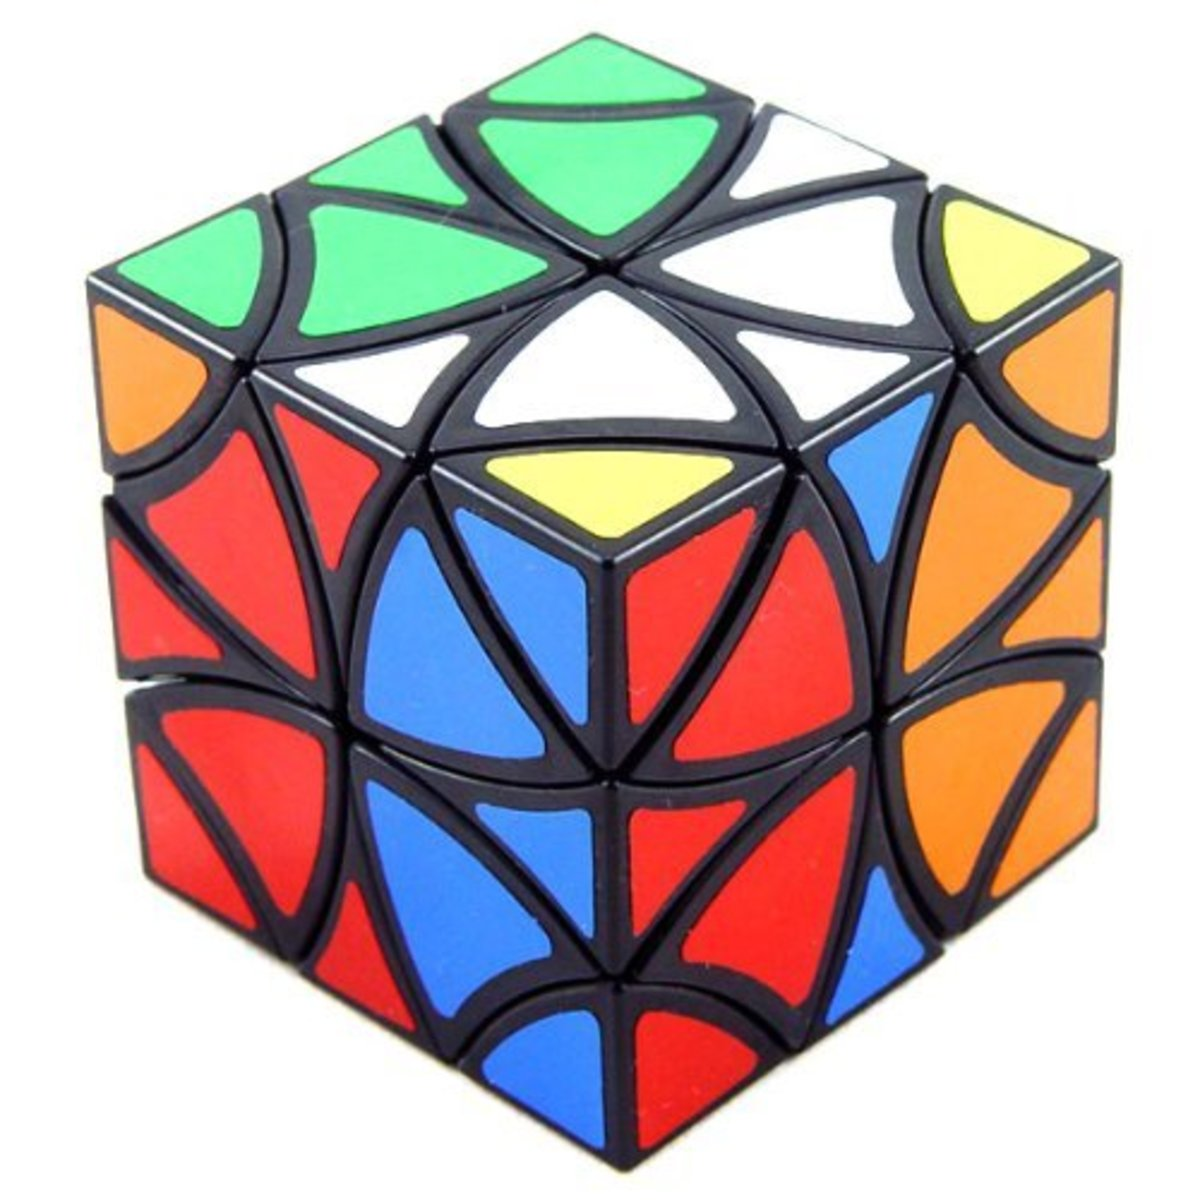 Curvy Copter Cube